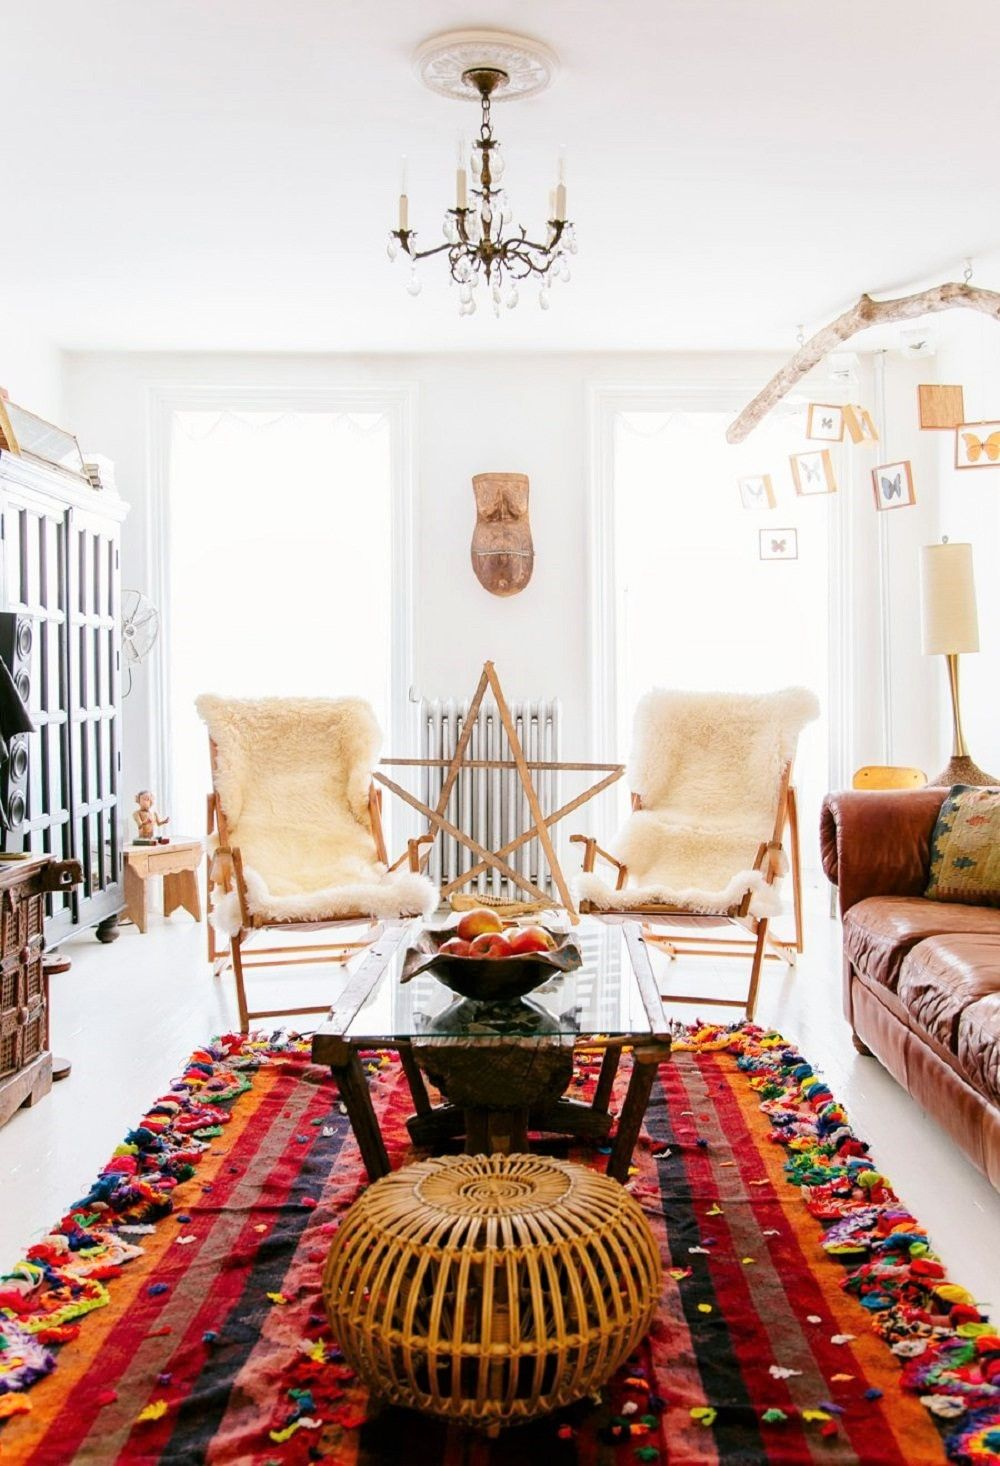 Vintage Rugs : tips on decorating your interior | Moroccan interiors ...